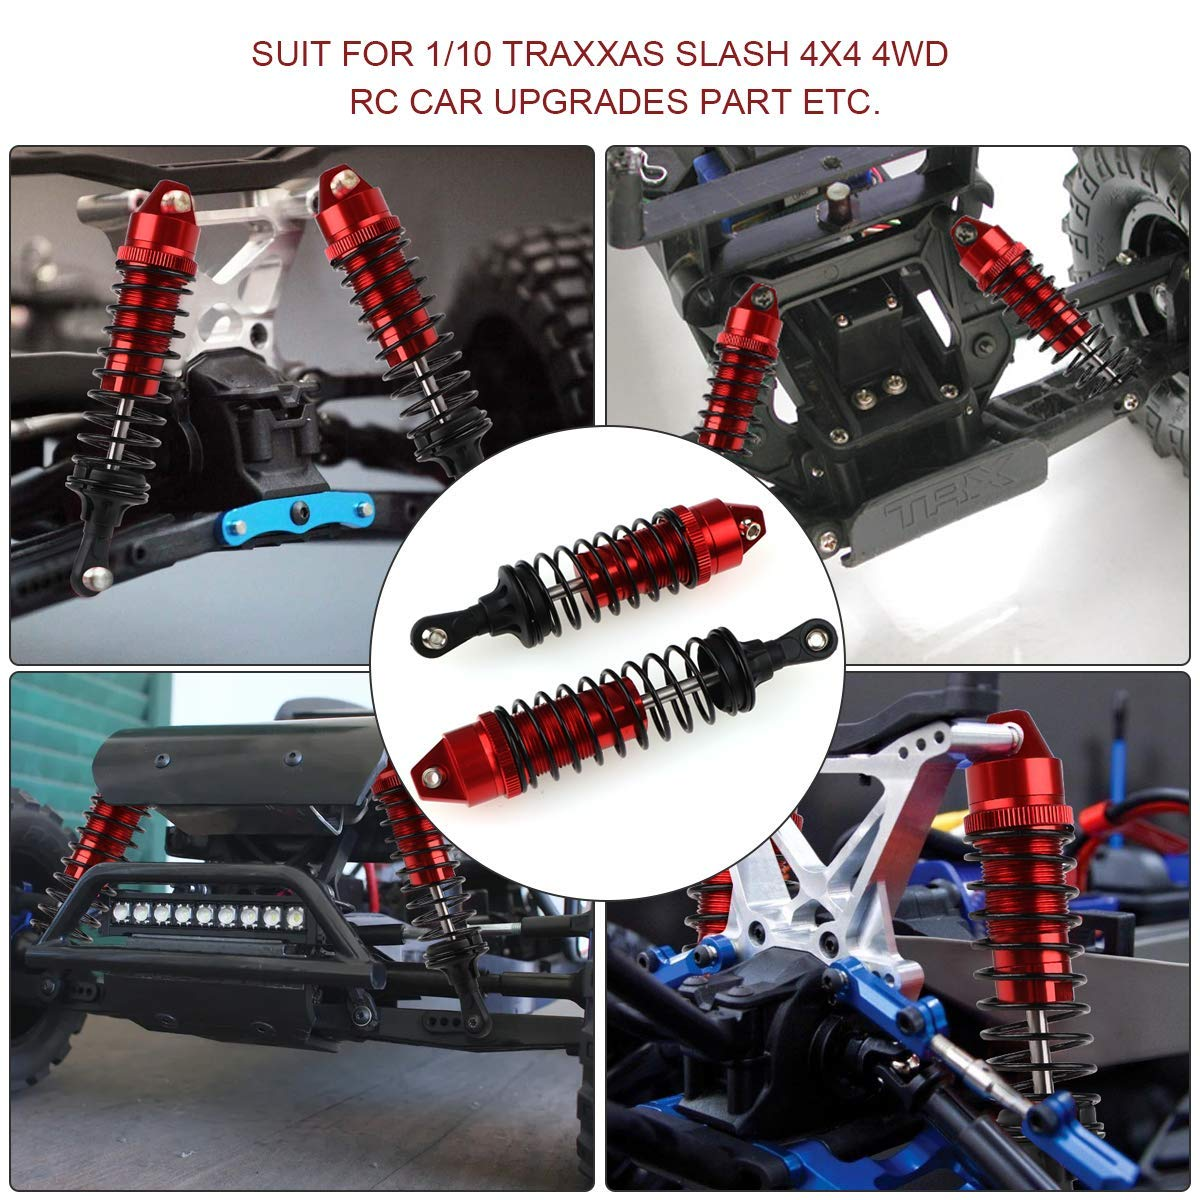 Front Rear Shock Absorber Springs Damper Aluminum Red for 1/10 Traxxas Slash 4x4 4WD RC Car Upgrades Part 4pcs